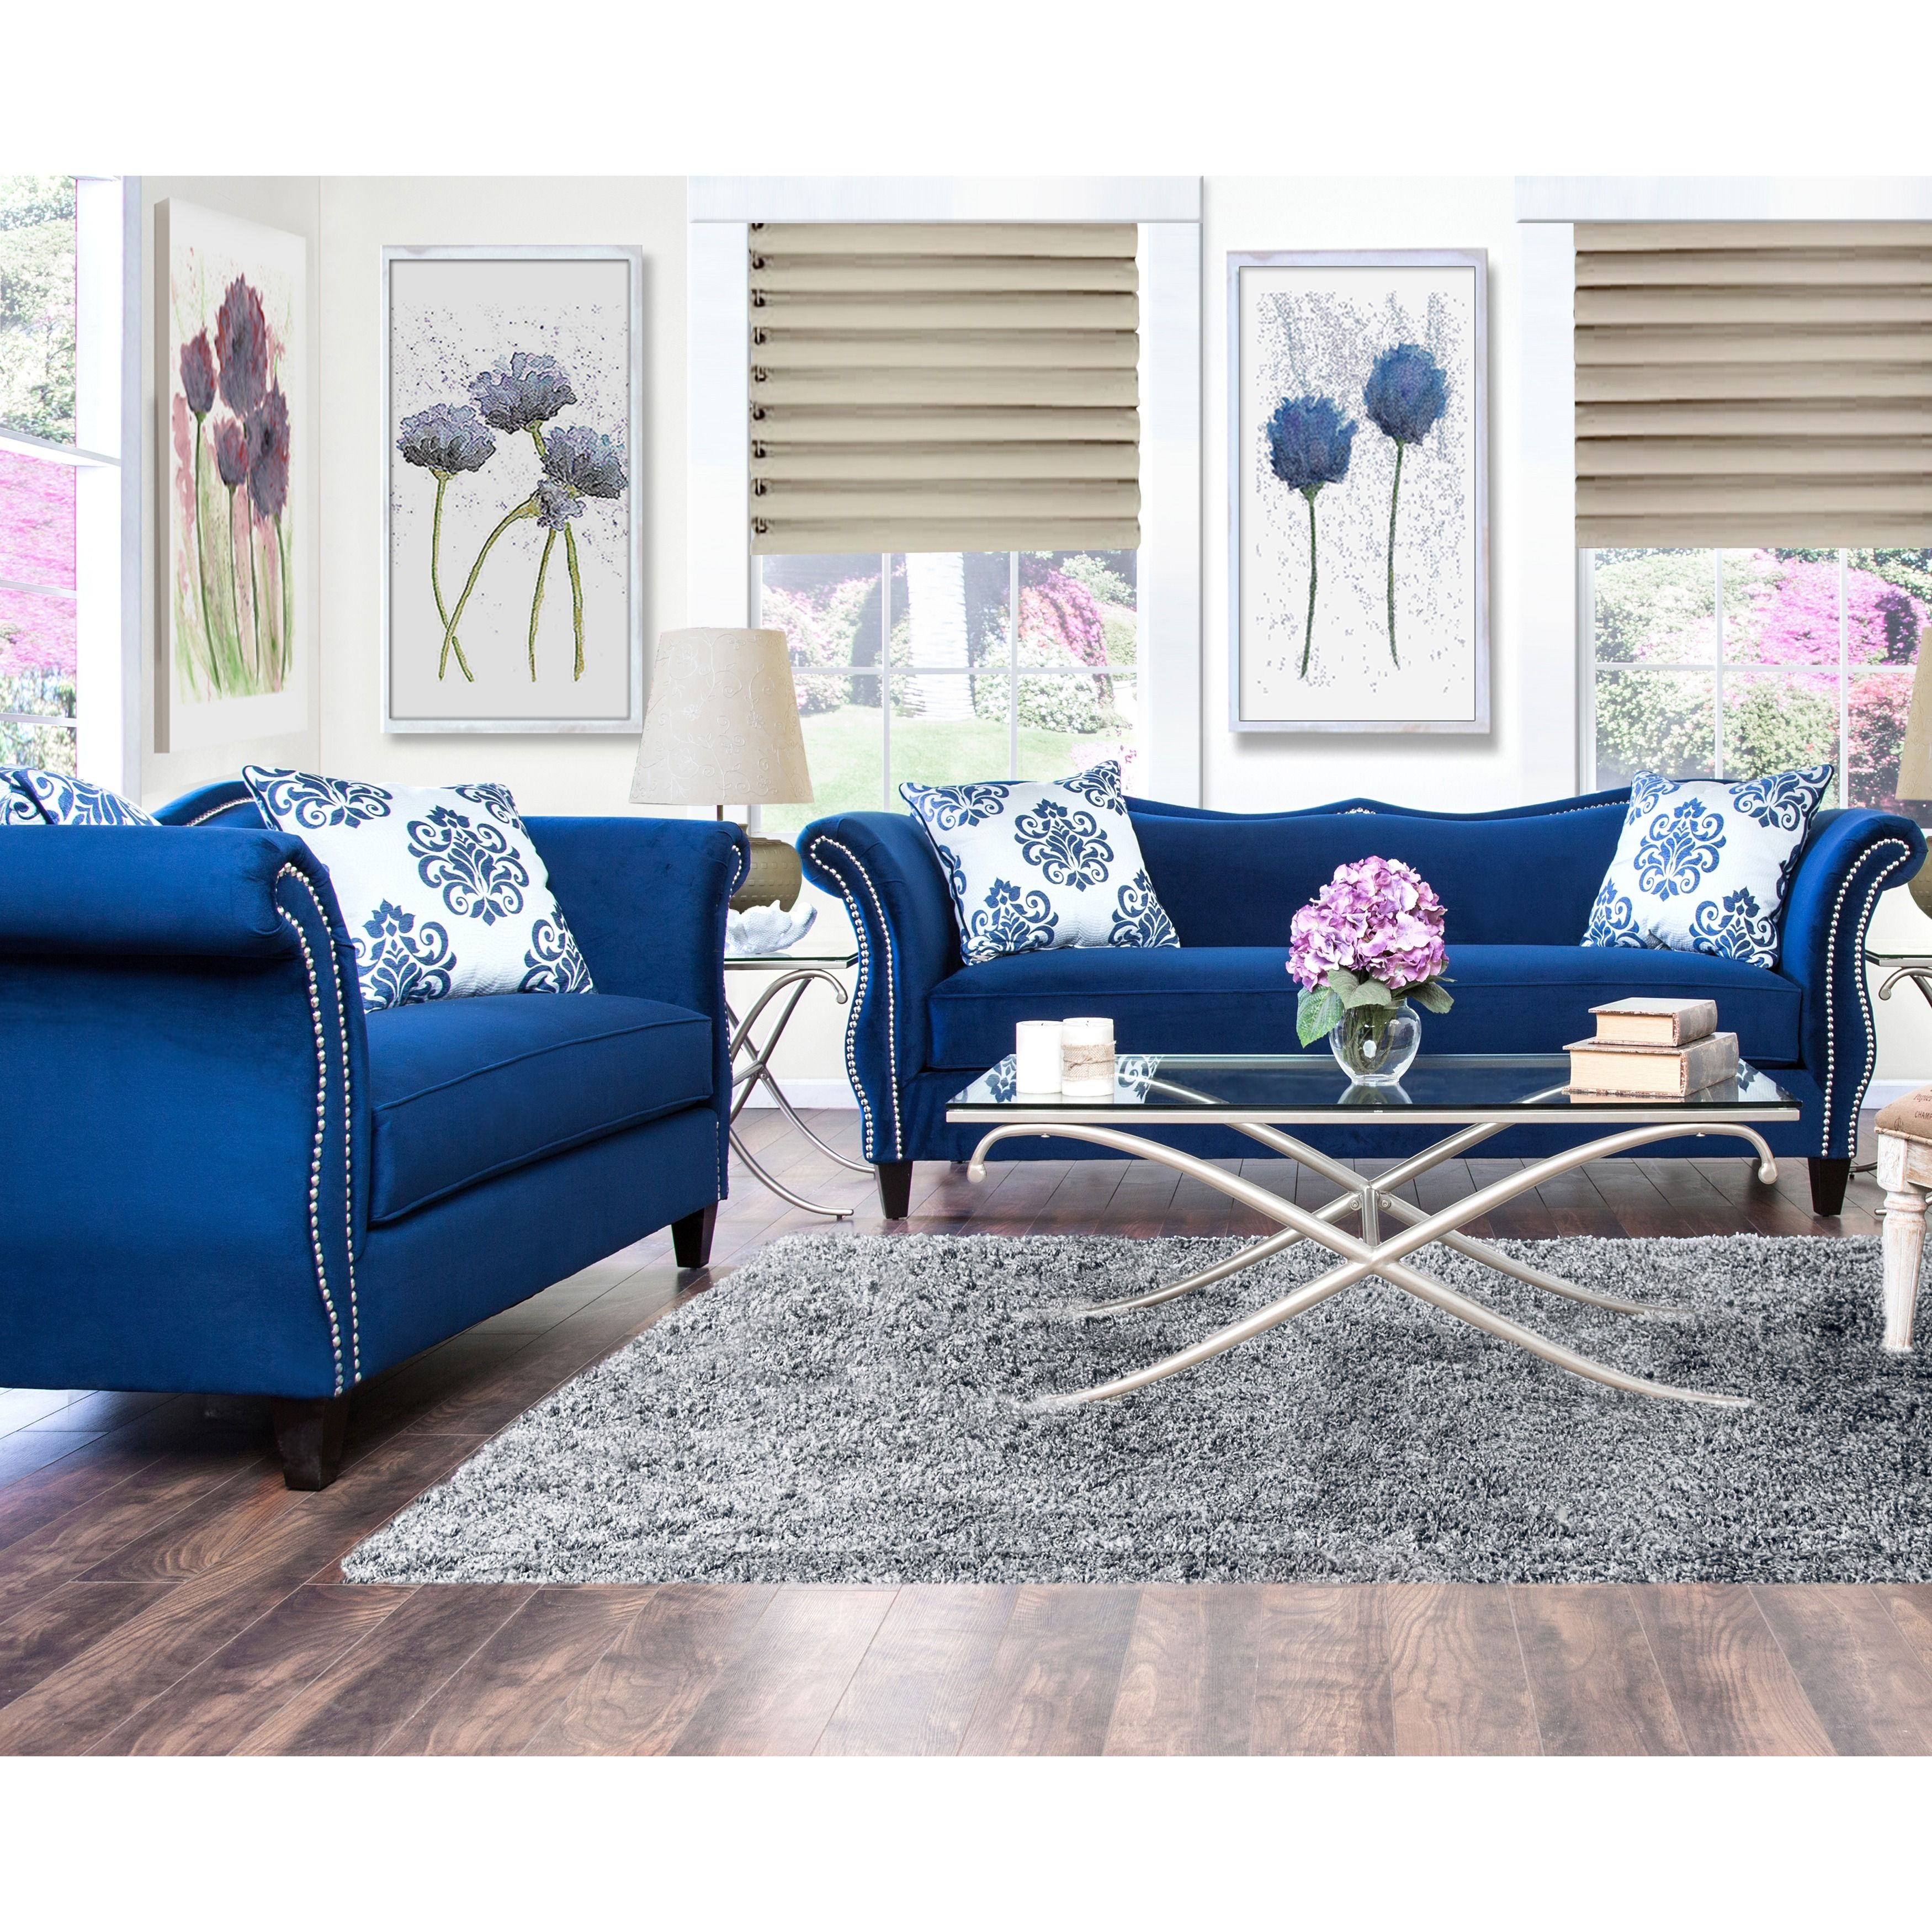 Online Shopping Bedding Furniture Electronics Jewelry Clothing More Blue Sofa Set Blue Living Room Blue Sofas Living Room